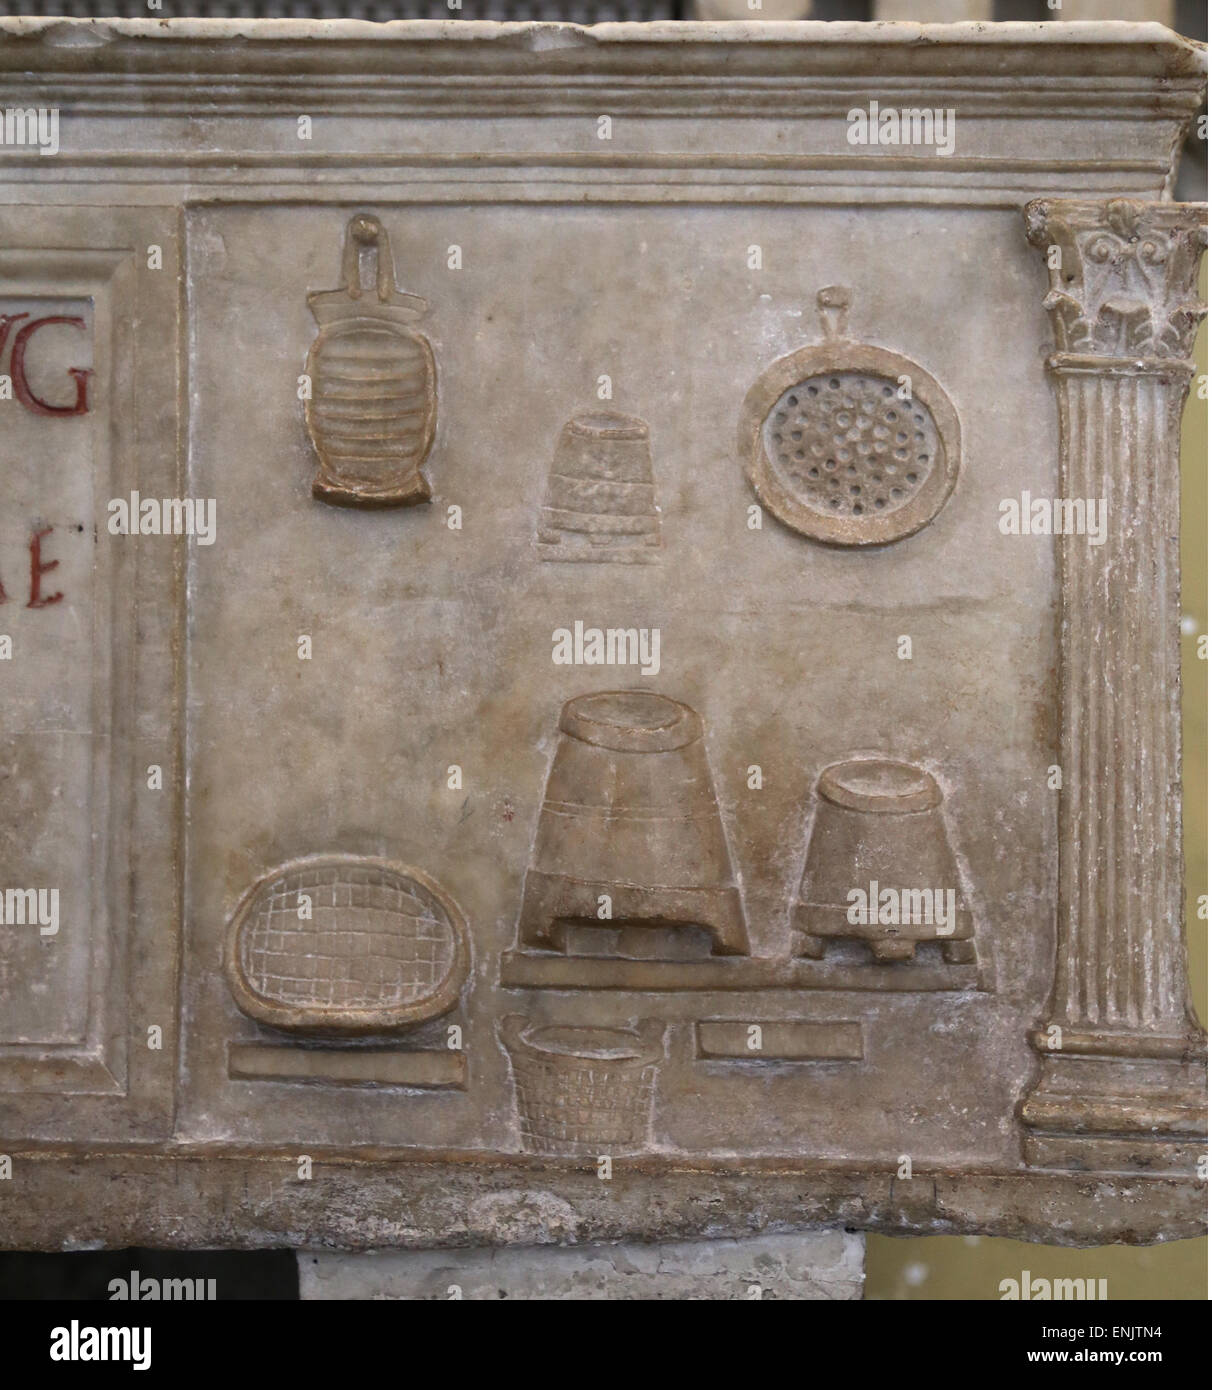 Urn holder of the miller Publius Nonius Zethus. From Ostia. The reliefs depict scenes of the miller's work: - Stock Image